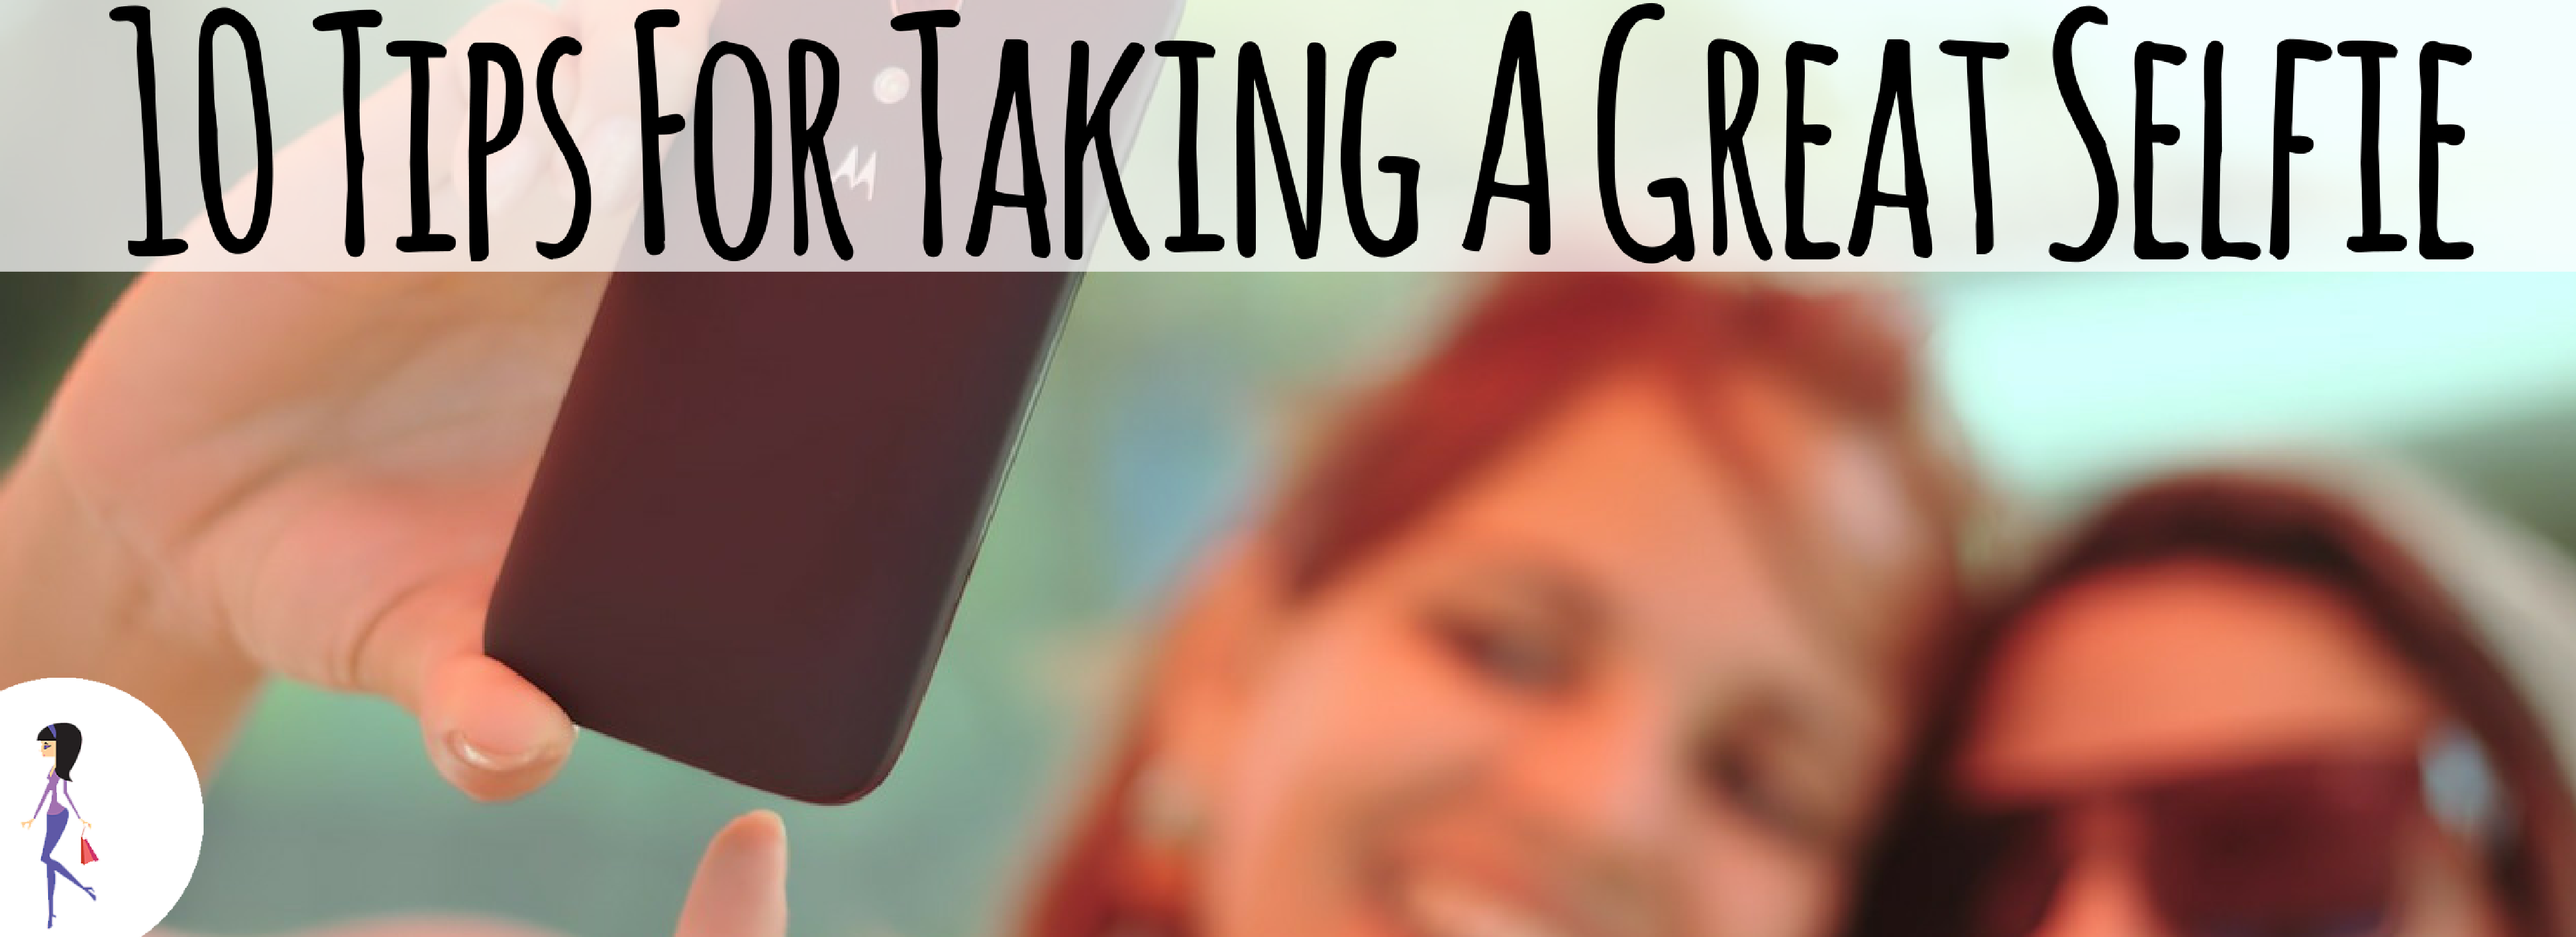 10 Tips For Taking A Great Selfie